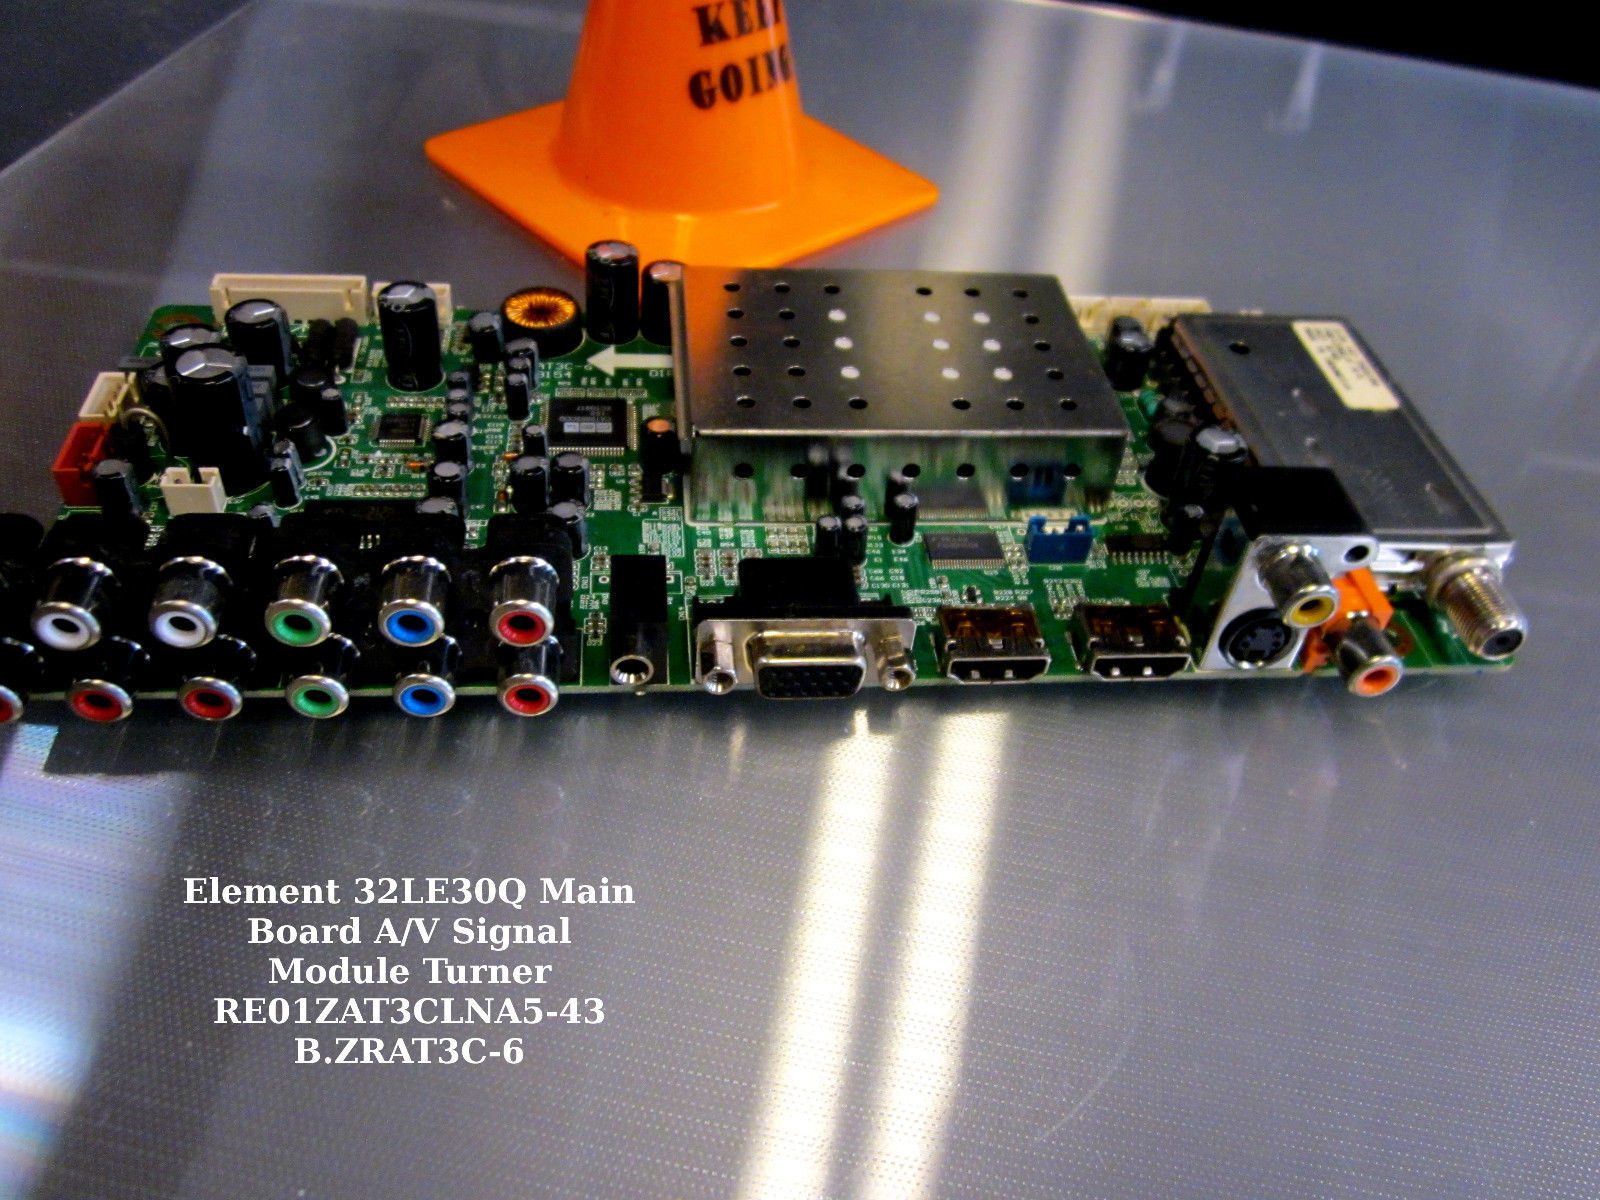 Primary image for Element 32LE30Q Main Board A/V Signal Module Turner RE01ZAT3CLNA5-43 B.ZRAT3C-6